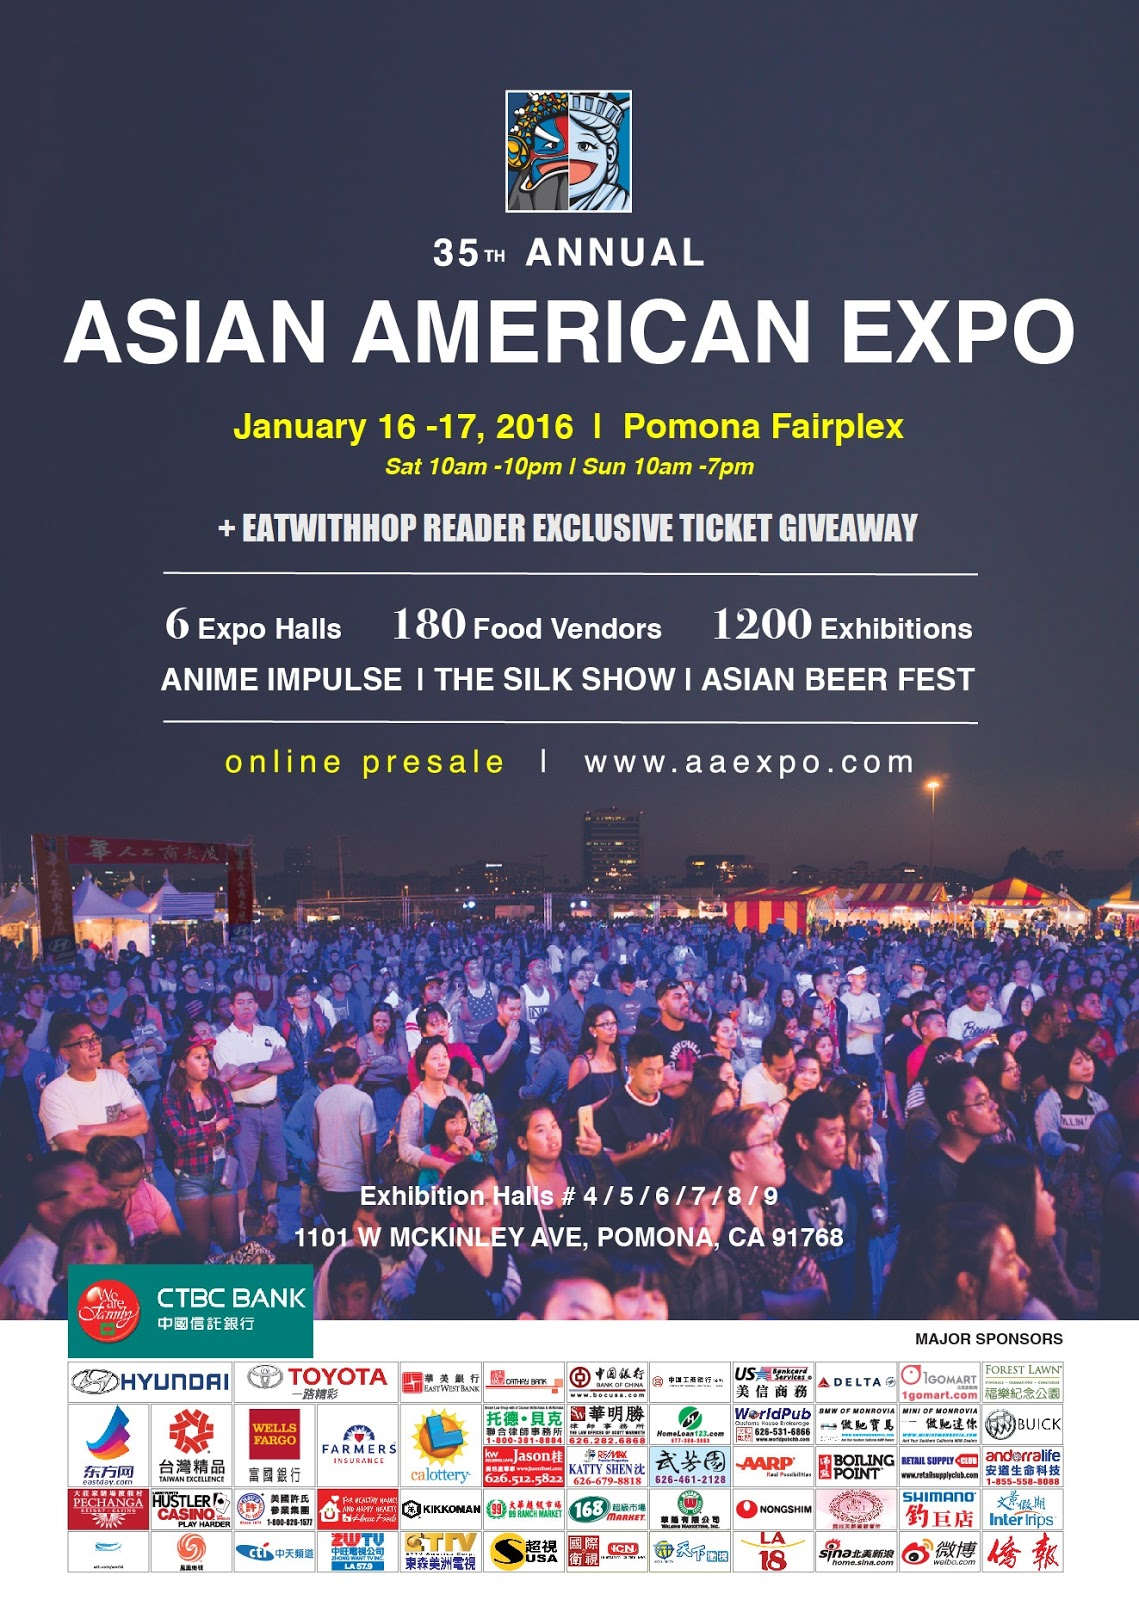 CELEBRATE THE YEAR OF THE MONKEY AT ASIAN AMERICAN EXPO + TICKET GIVEAWAY - POMONA FAIRFLEX